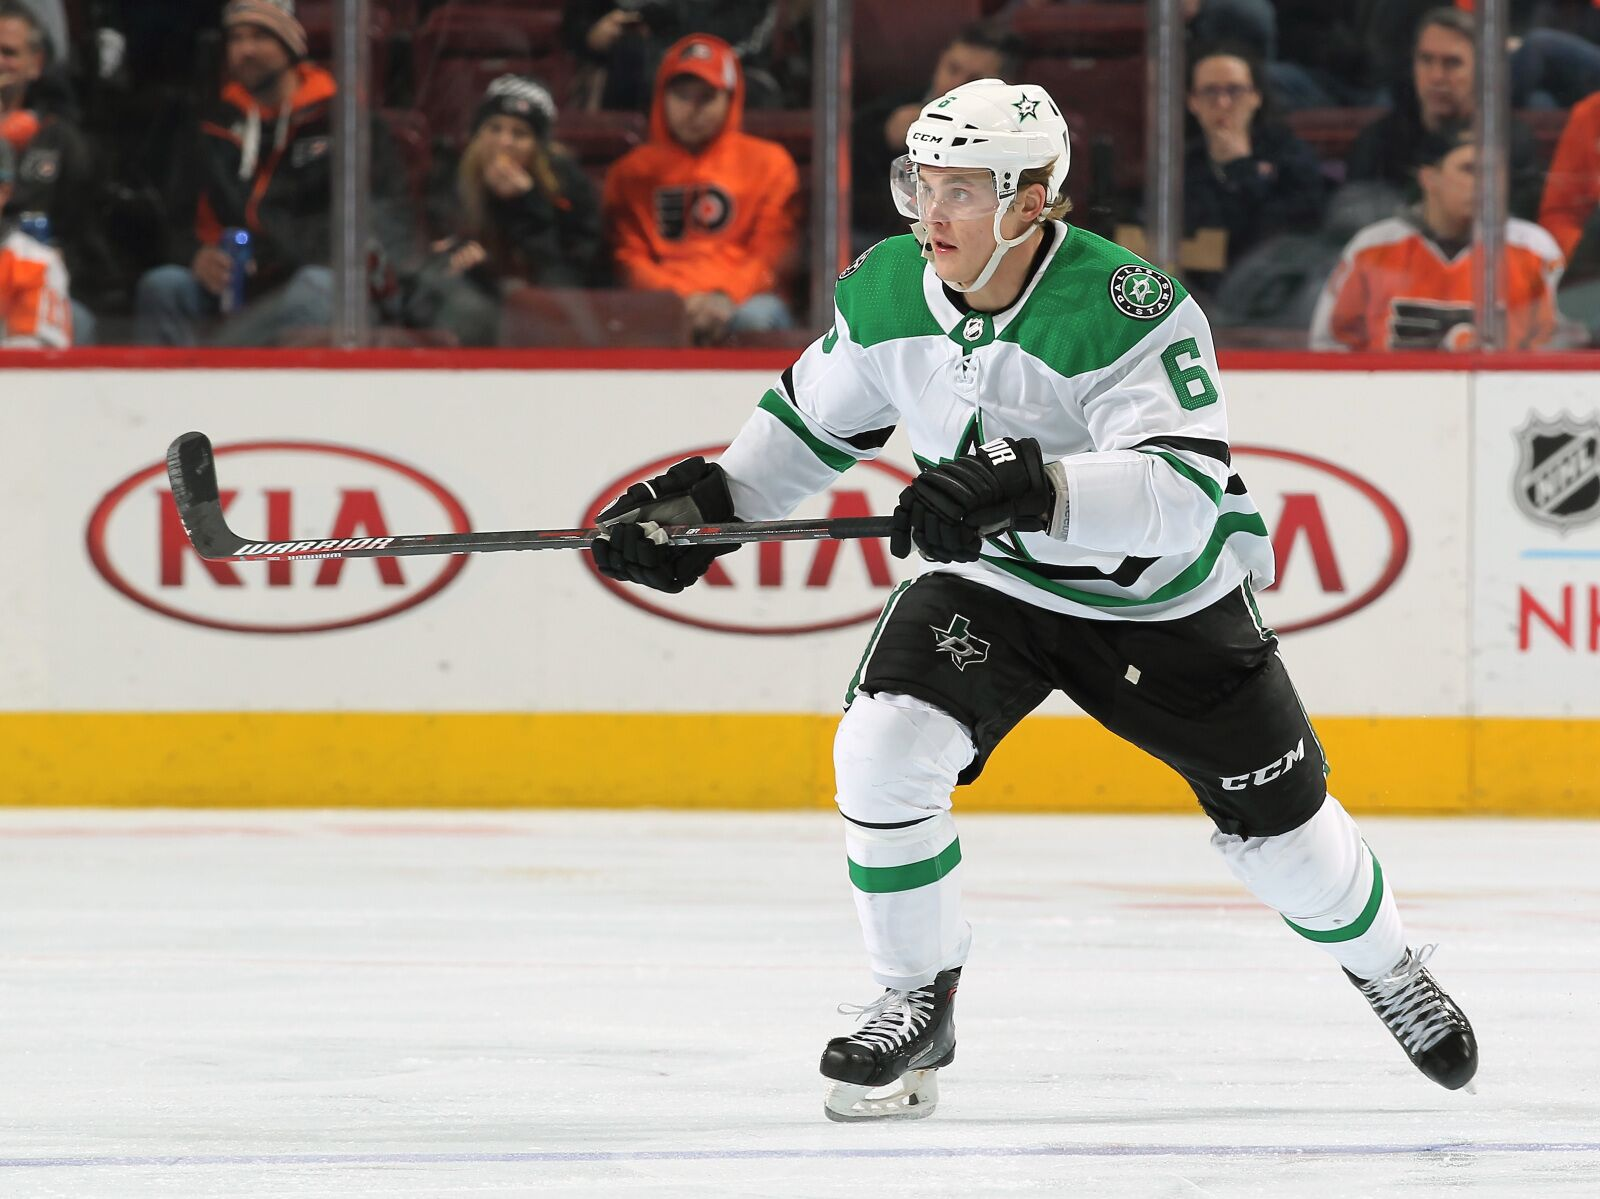 Montreal Canadiens Rumour: Habs Trading A Player For Julius Honka?